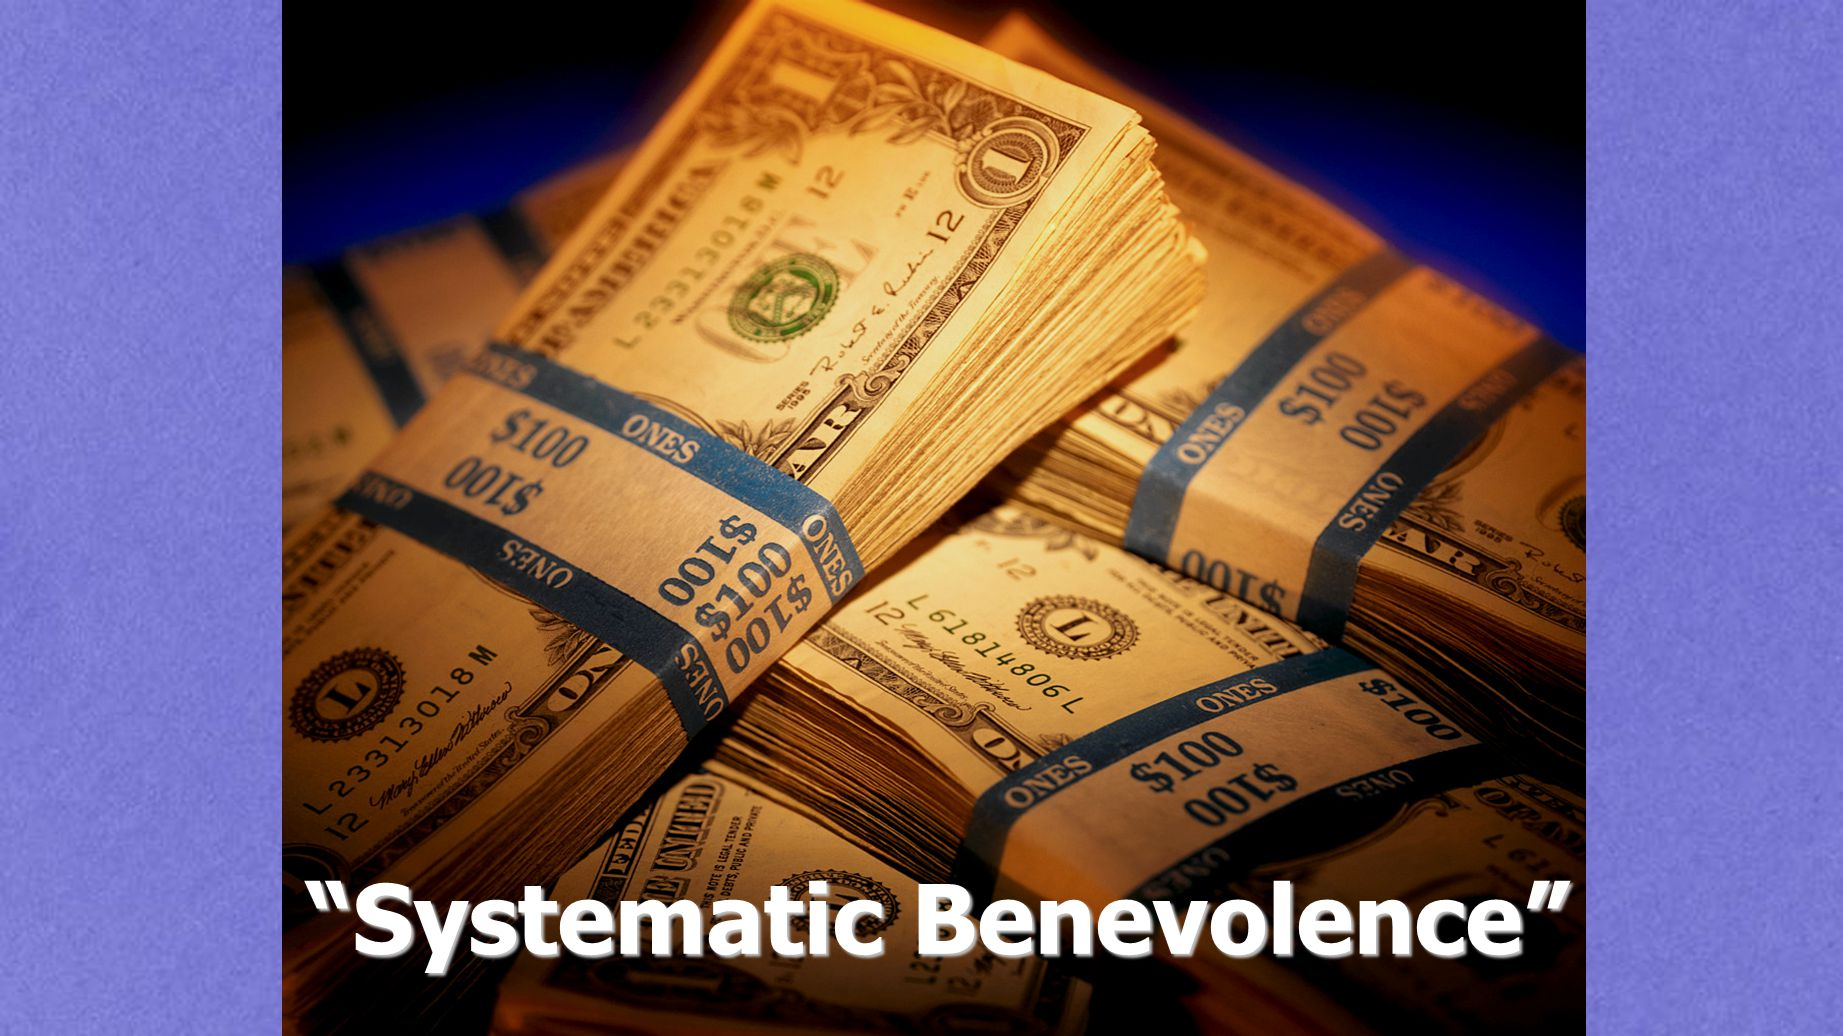 Systematic Benevolence